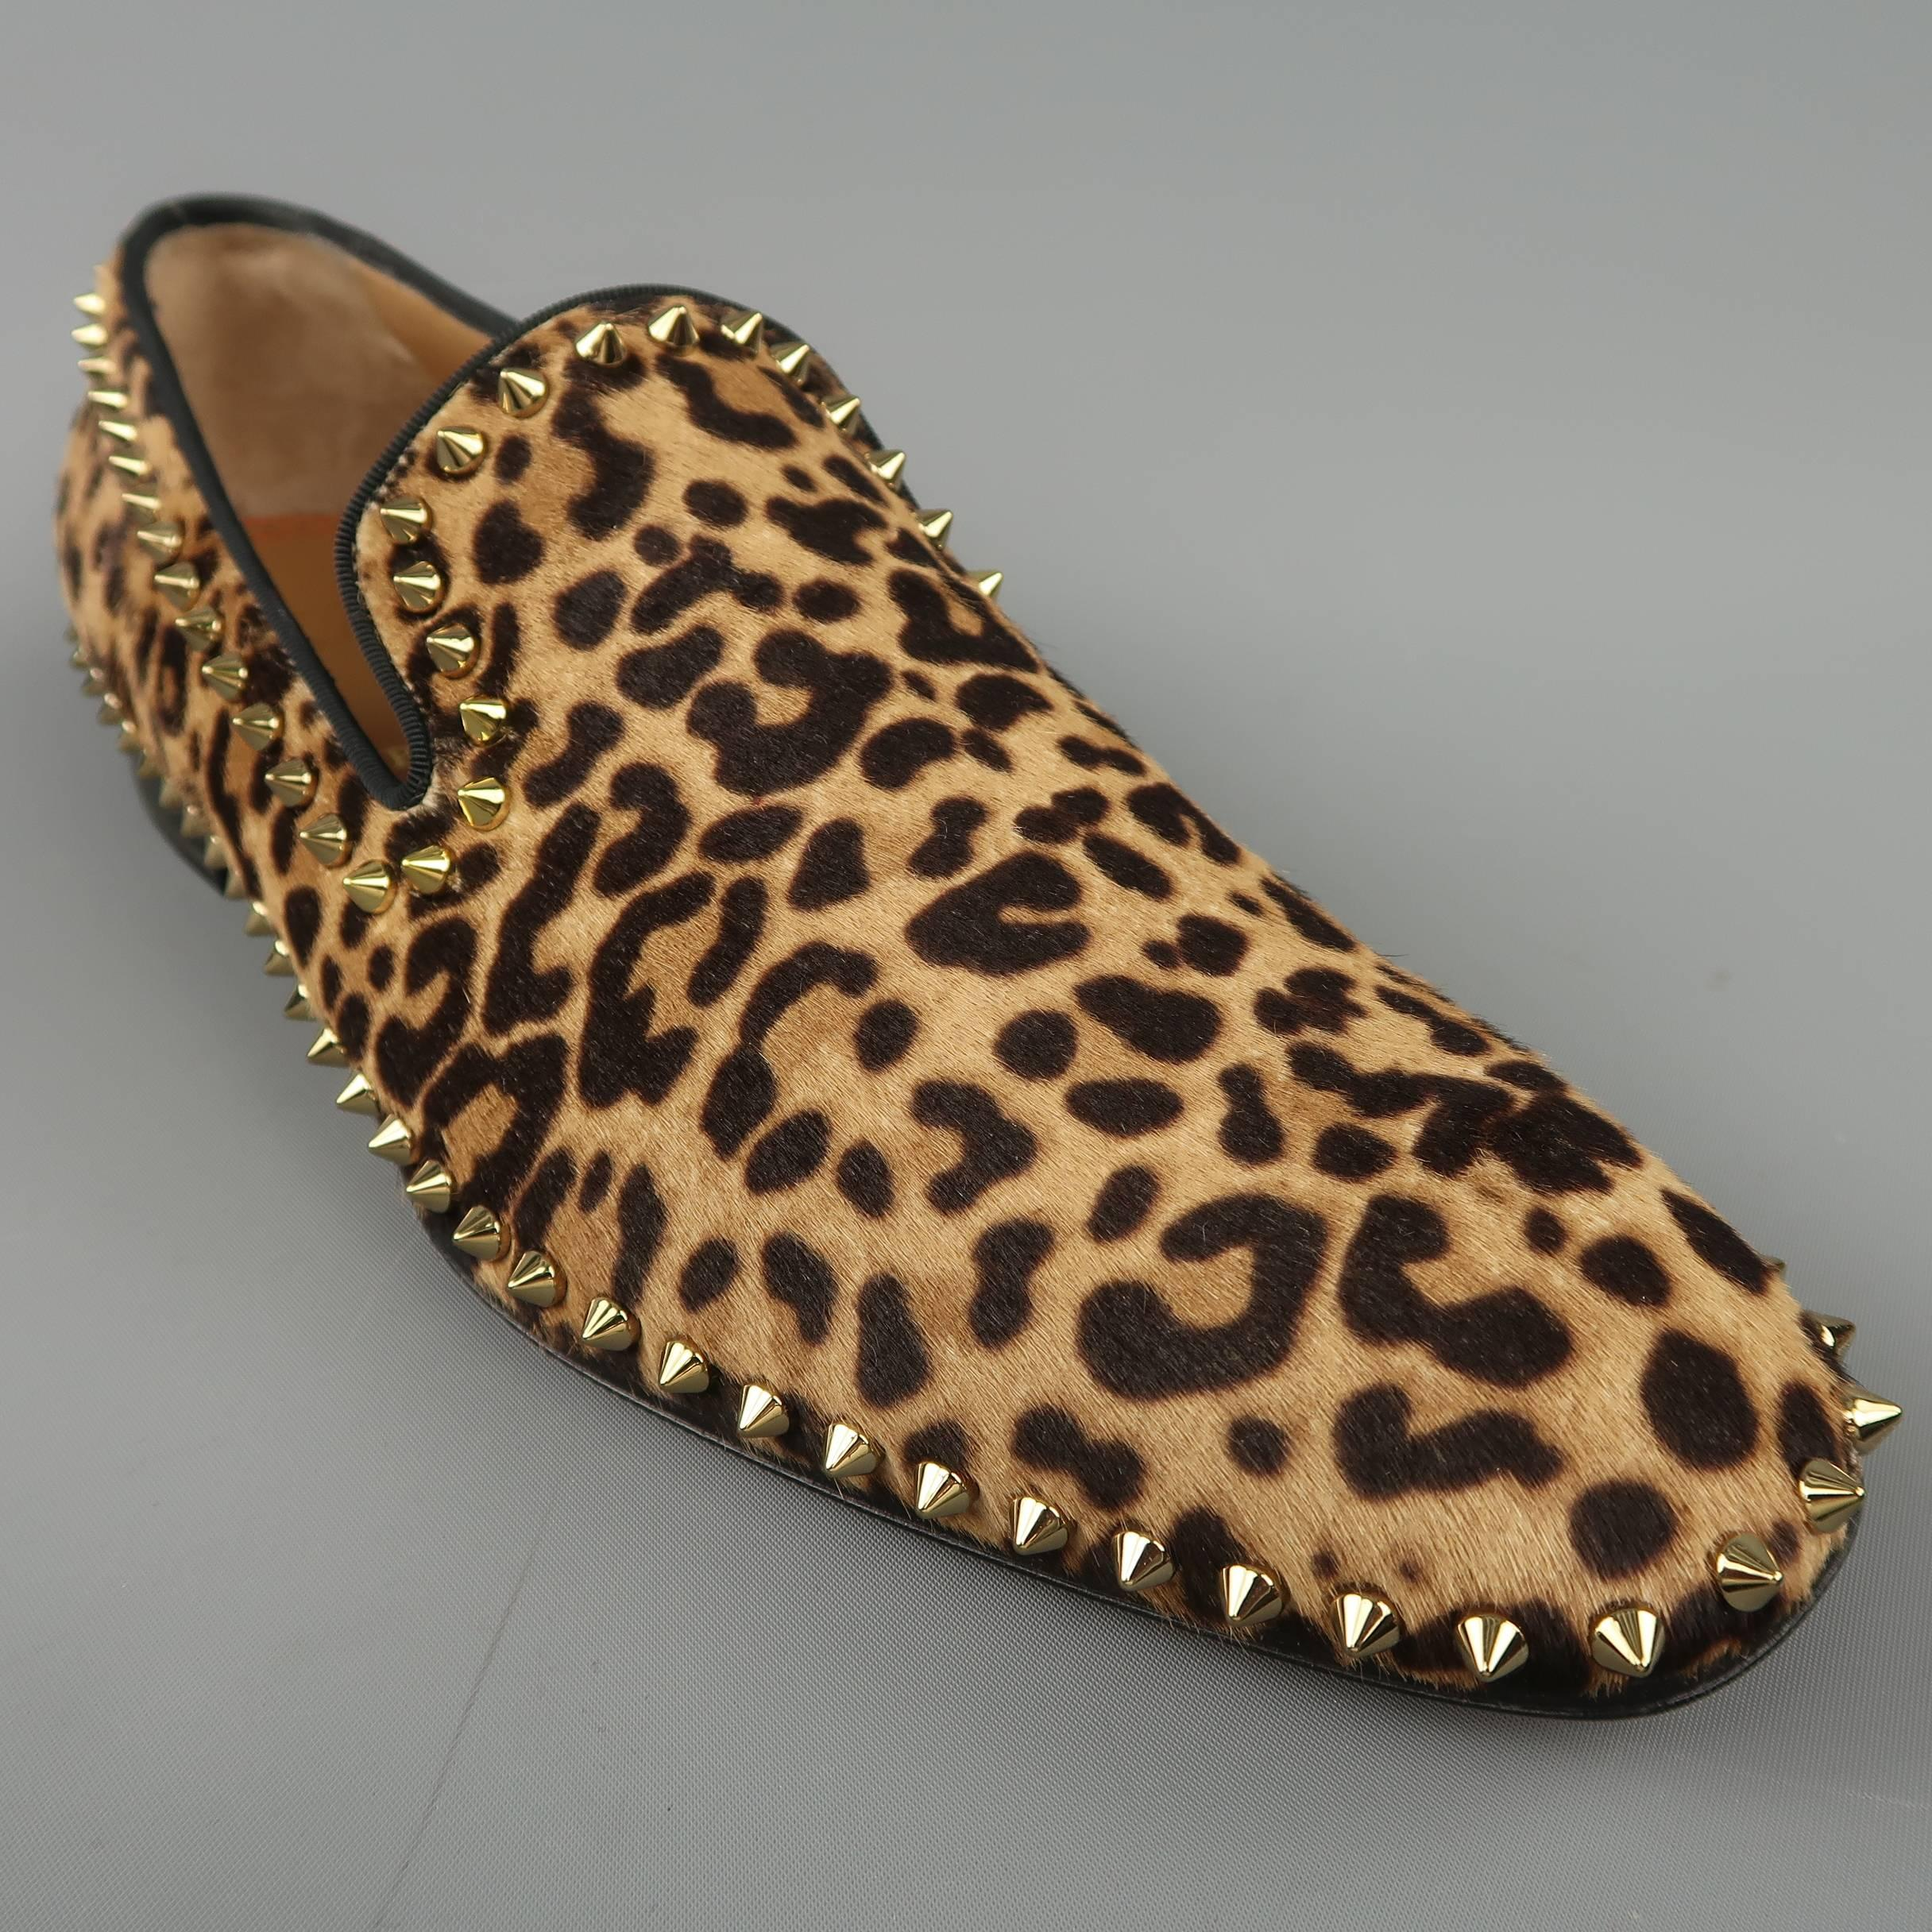 e252bf56815 Christian Louboutin Men s Leopard Print Pony Hair Gold Spike Loafers at  1stdibs